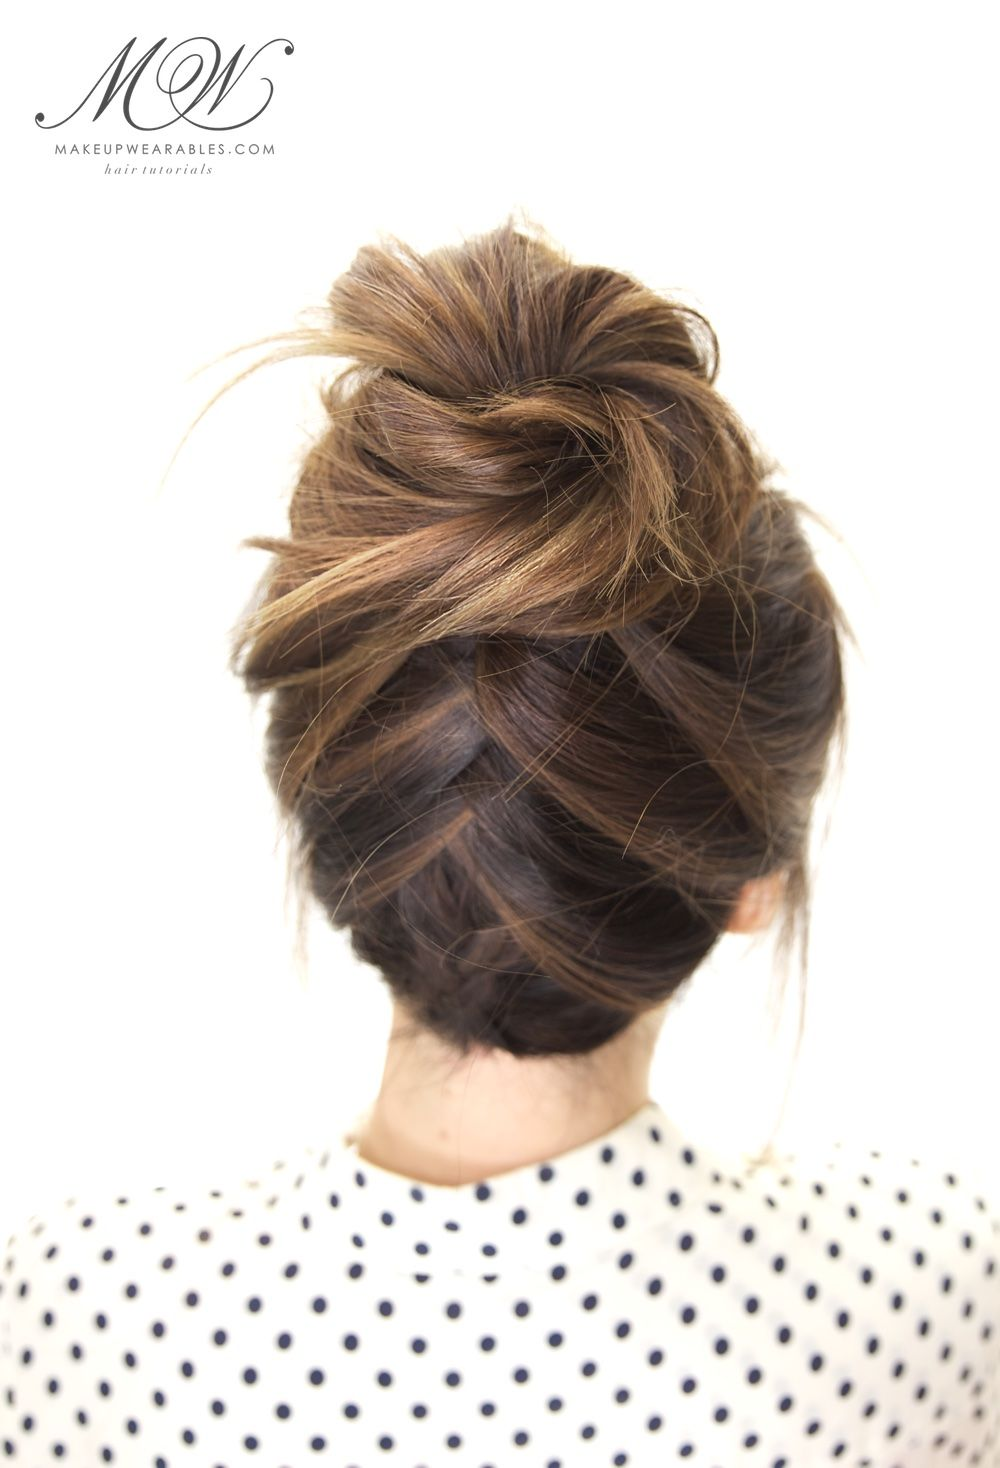 Tuxedo braid bun hairstyle cute everyday hairstyles for school